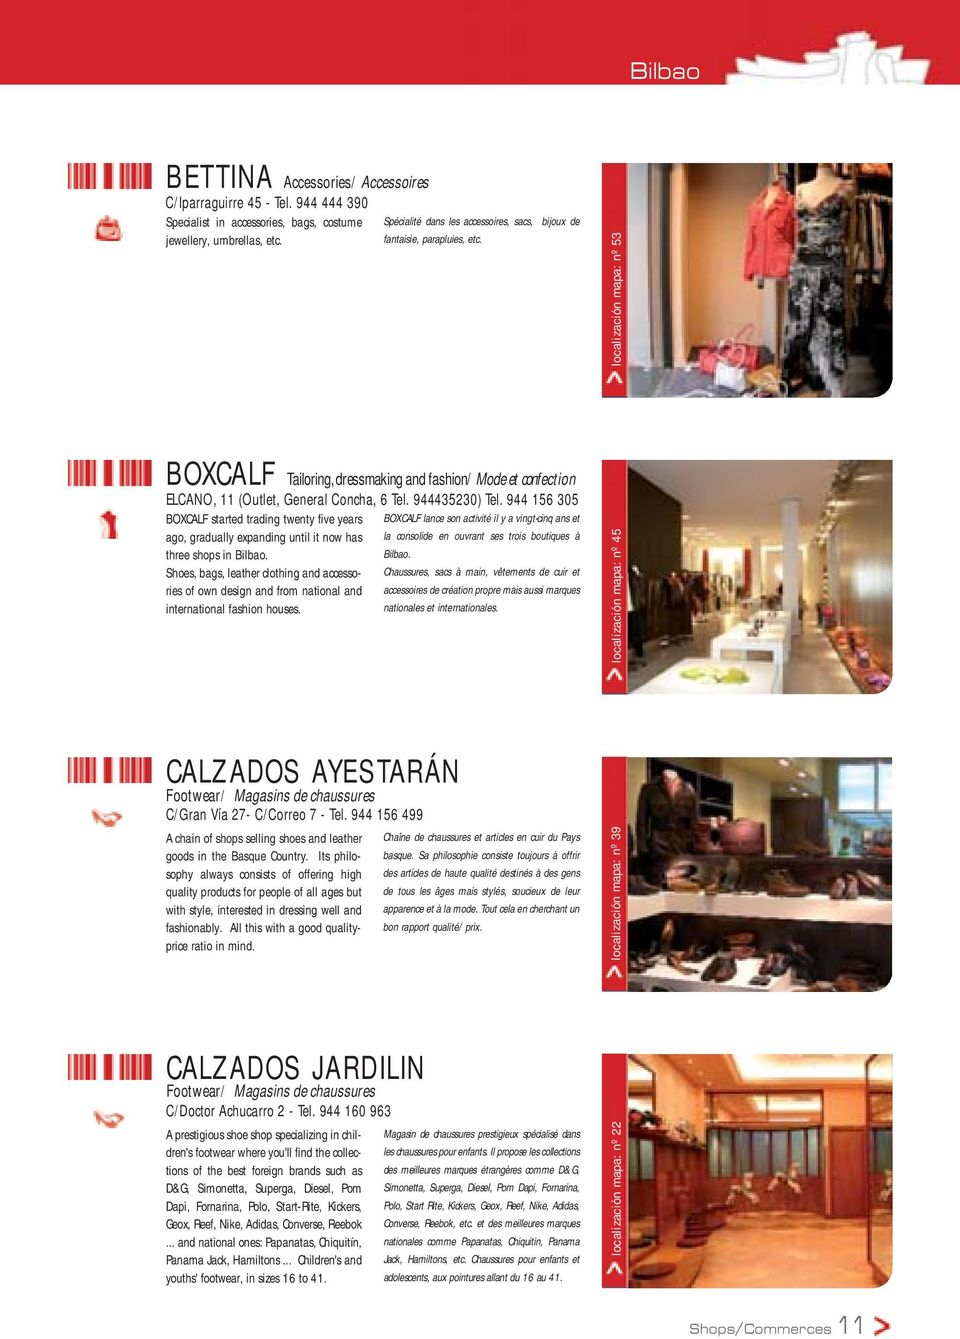 localización mapa: nº 53 BOXCALF Tailoring, dressmaking and fashion/ Mode et confection ELCANO, 11 (Outlet, General Concha, 6 Tel. 944435230) Tel.